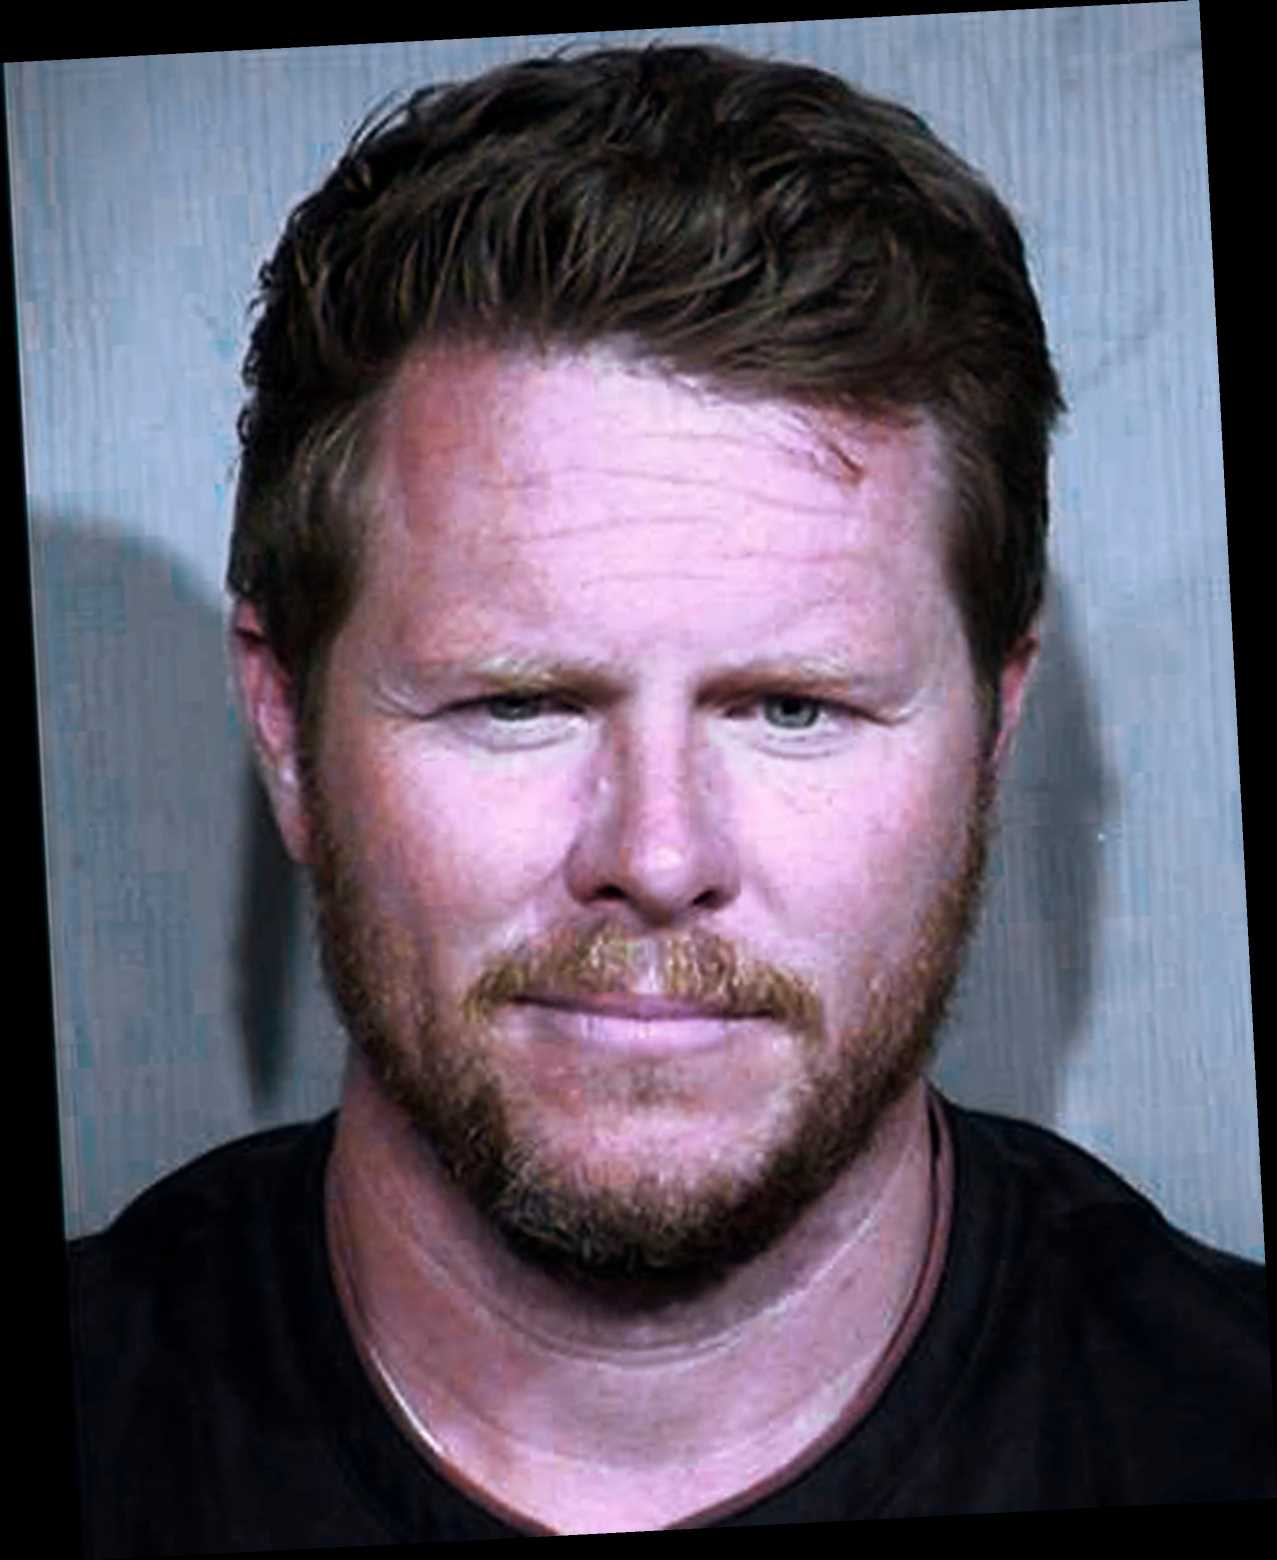 Az. Lawyer Charged With Smuggling Dozens of Pregnant Women Into U.S. in Illegal Adoption Scheme